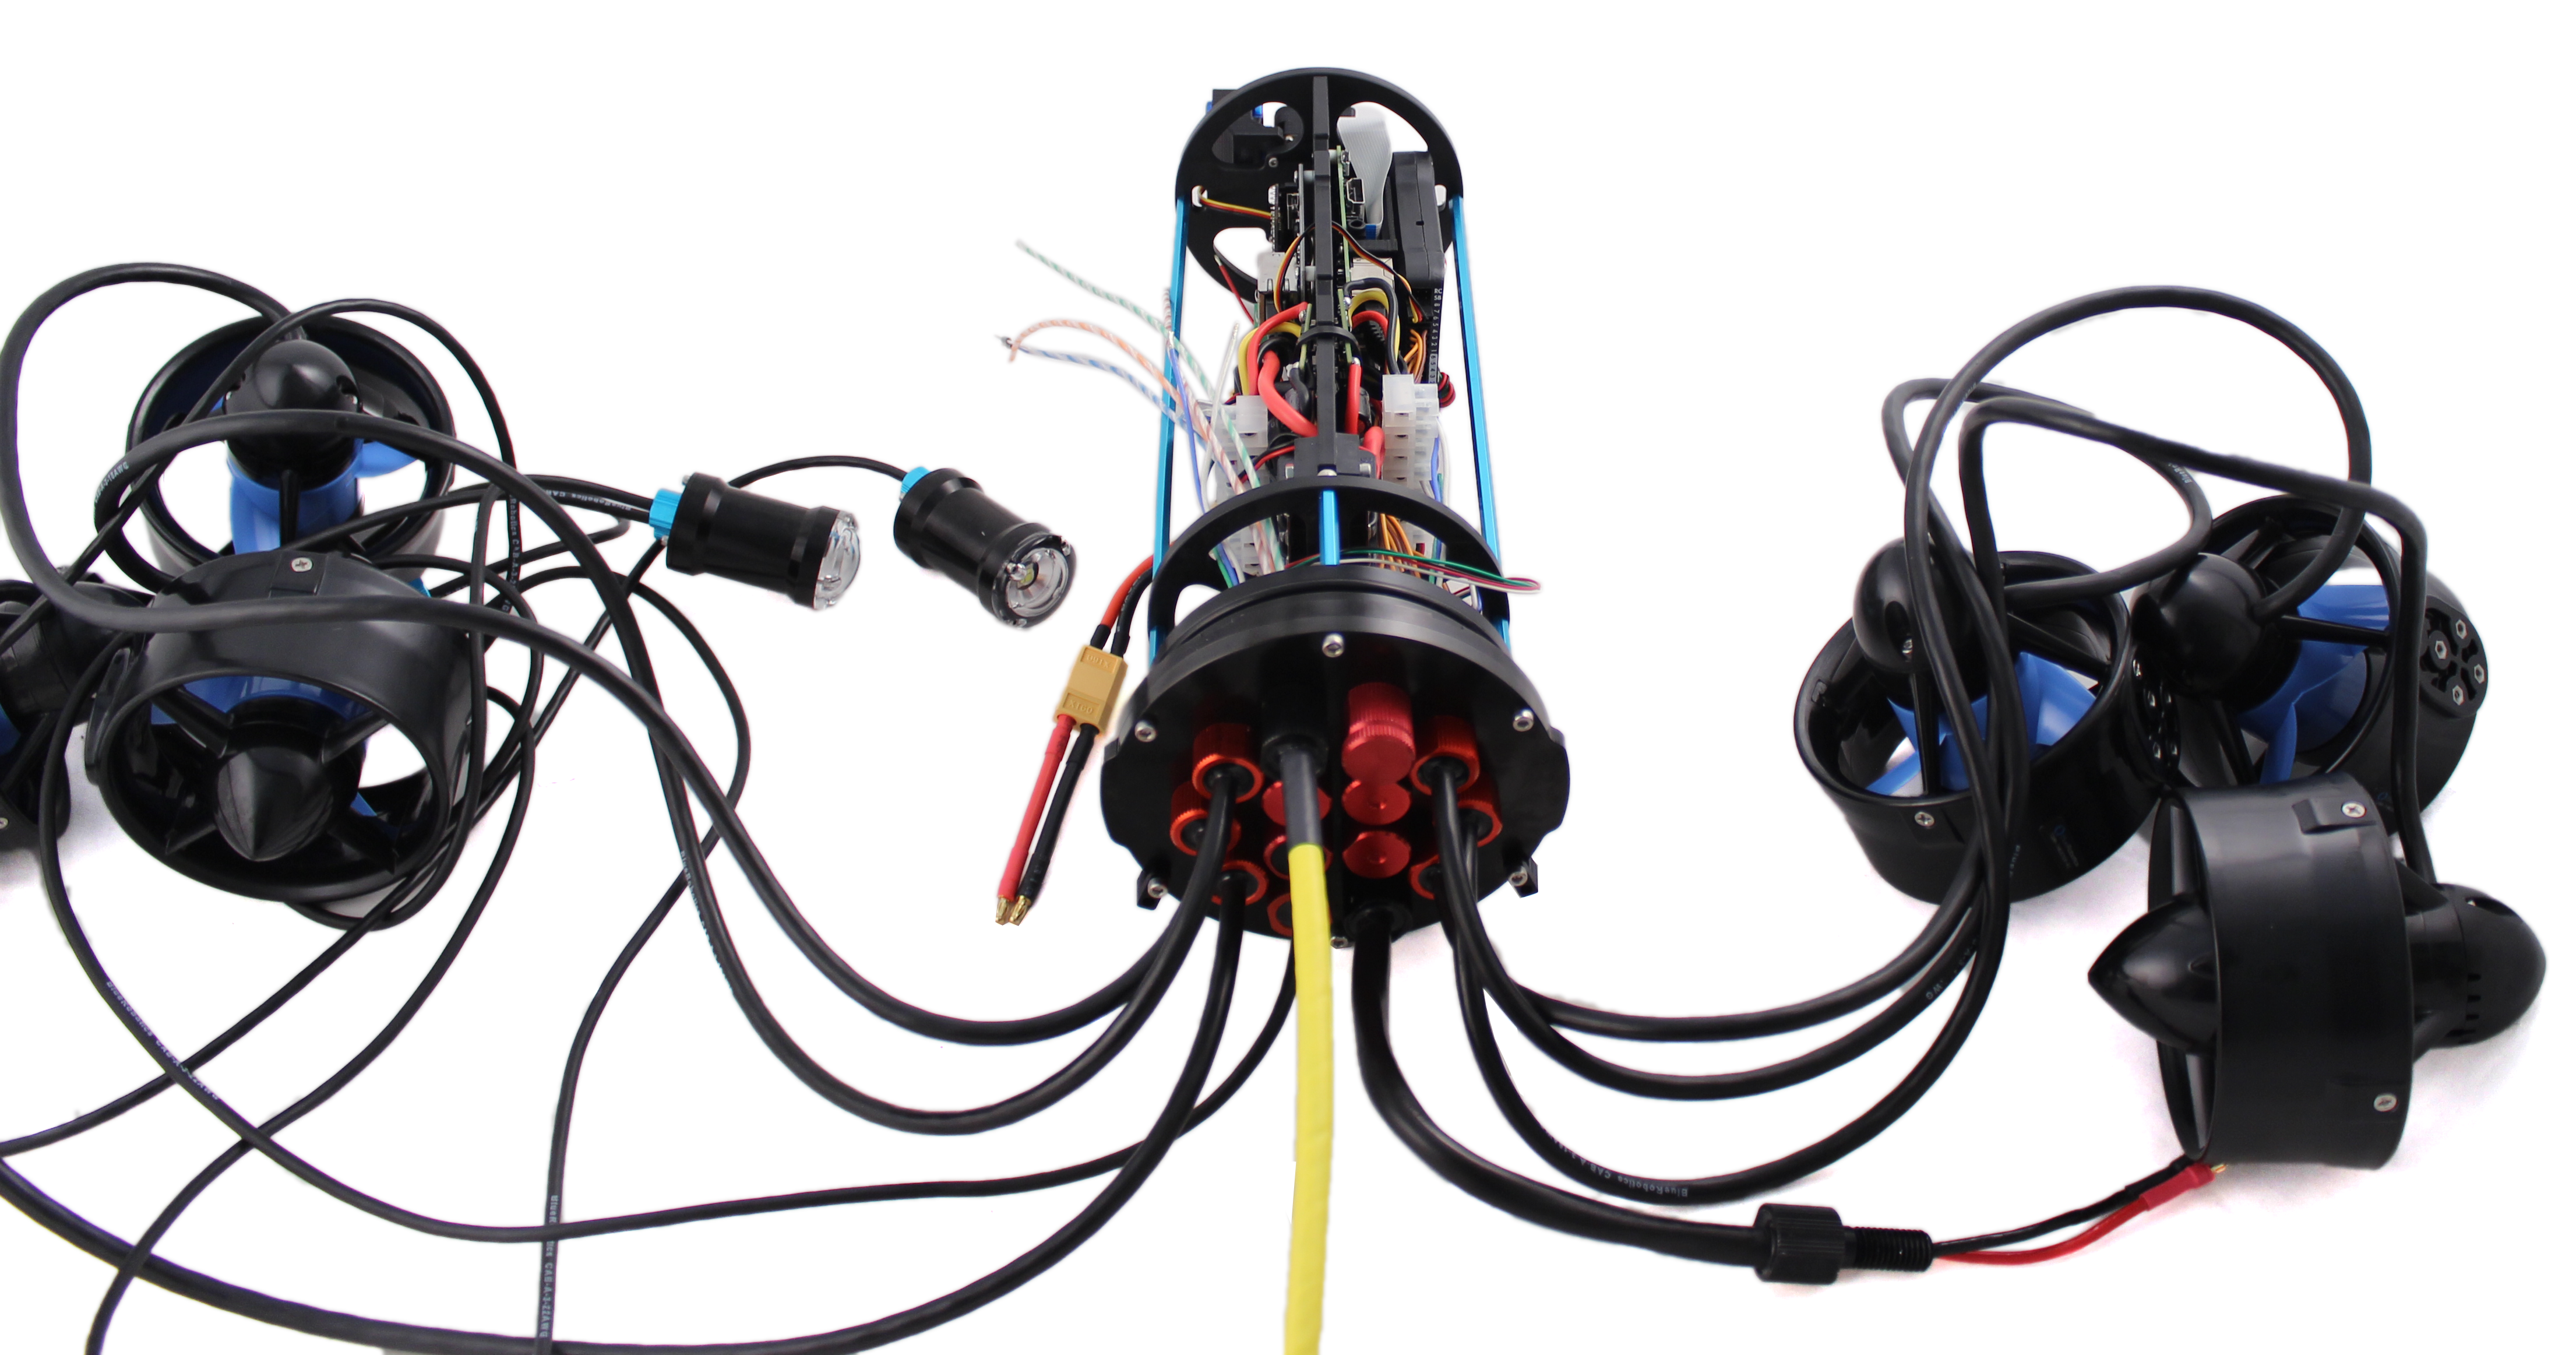 Bluerov2 Assembly Lamp 1 Ballast Wiring Diagram Get Free Image About Installing The End Cap